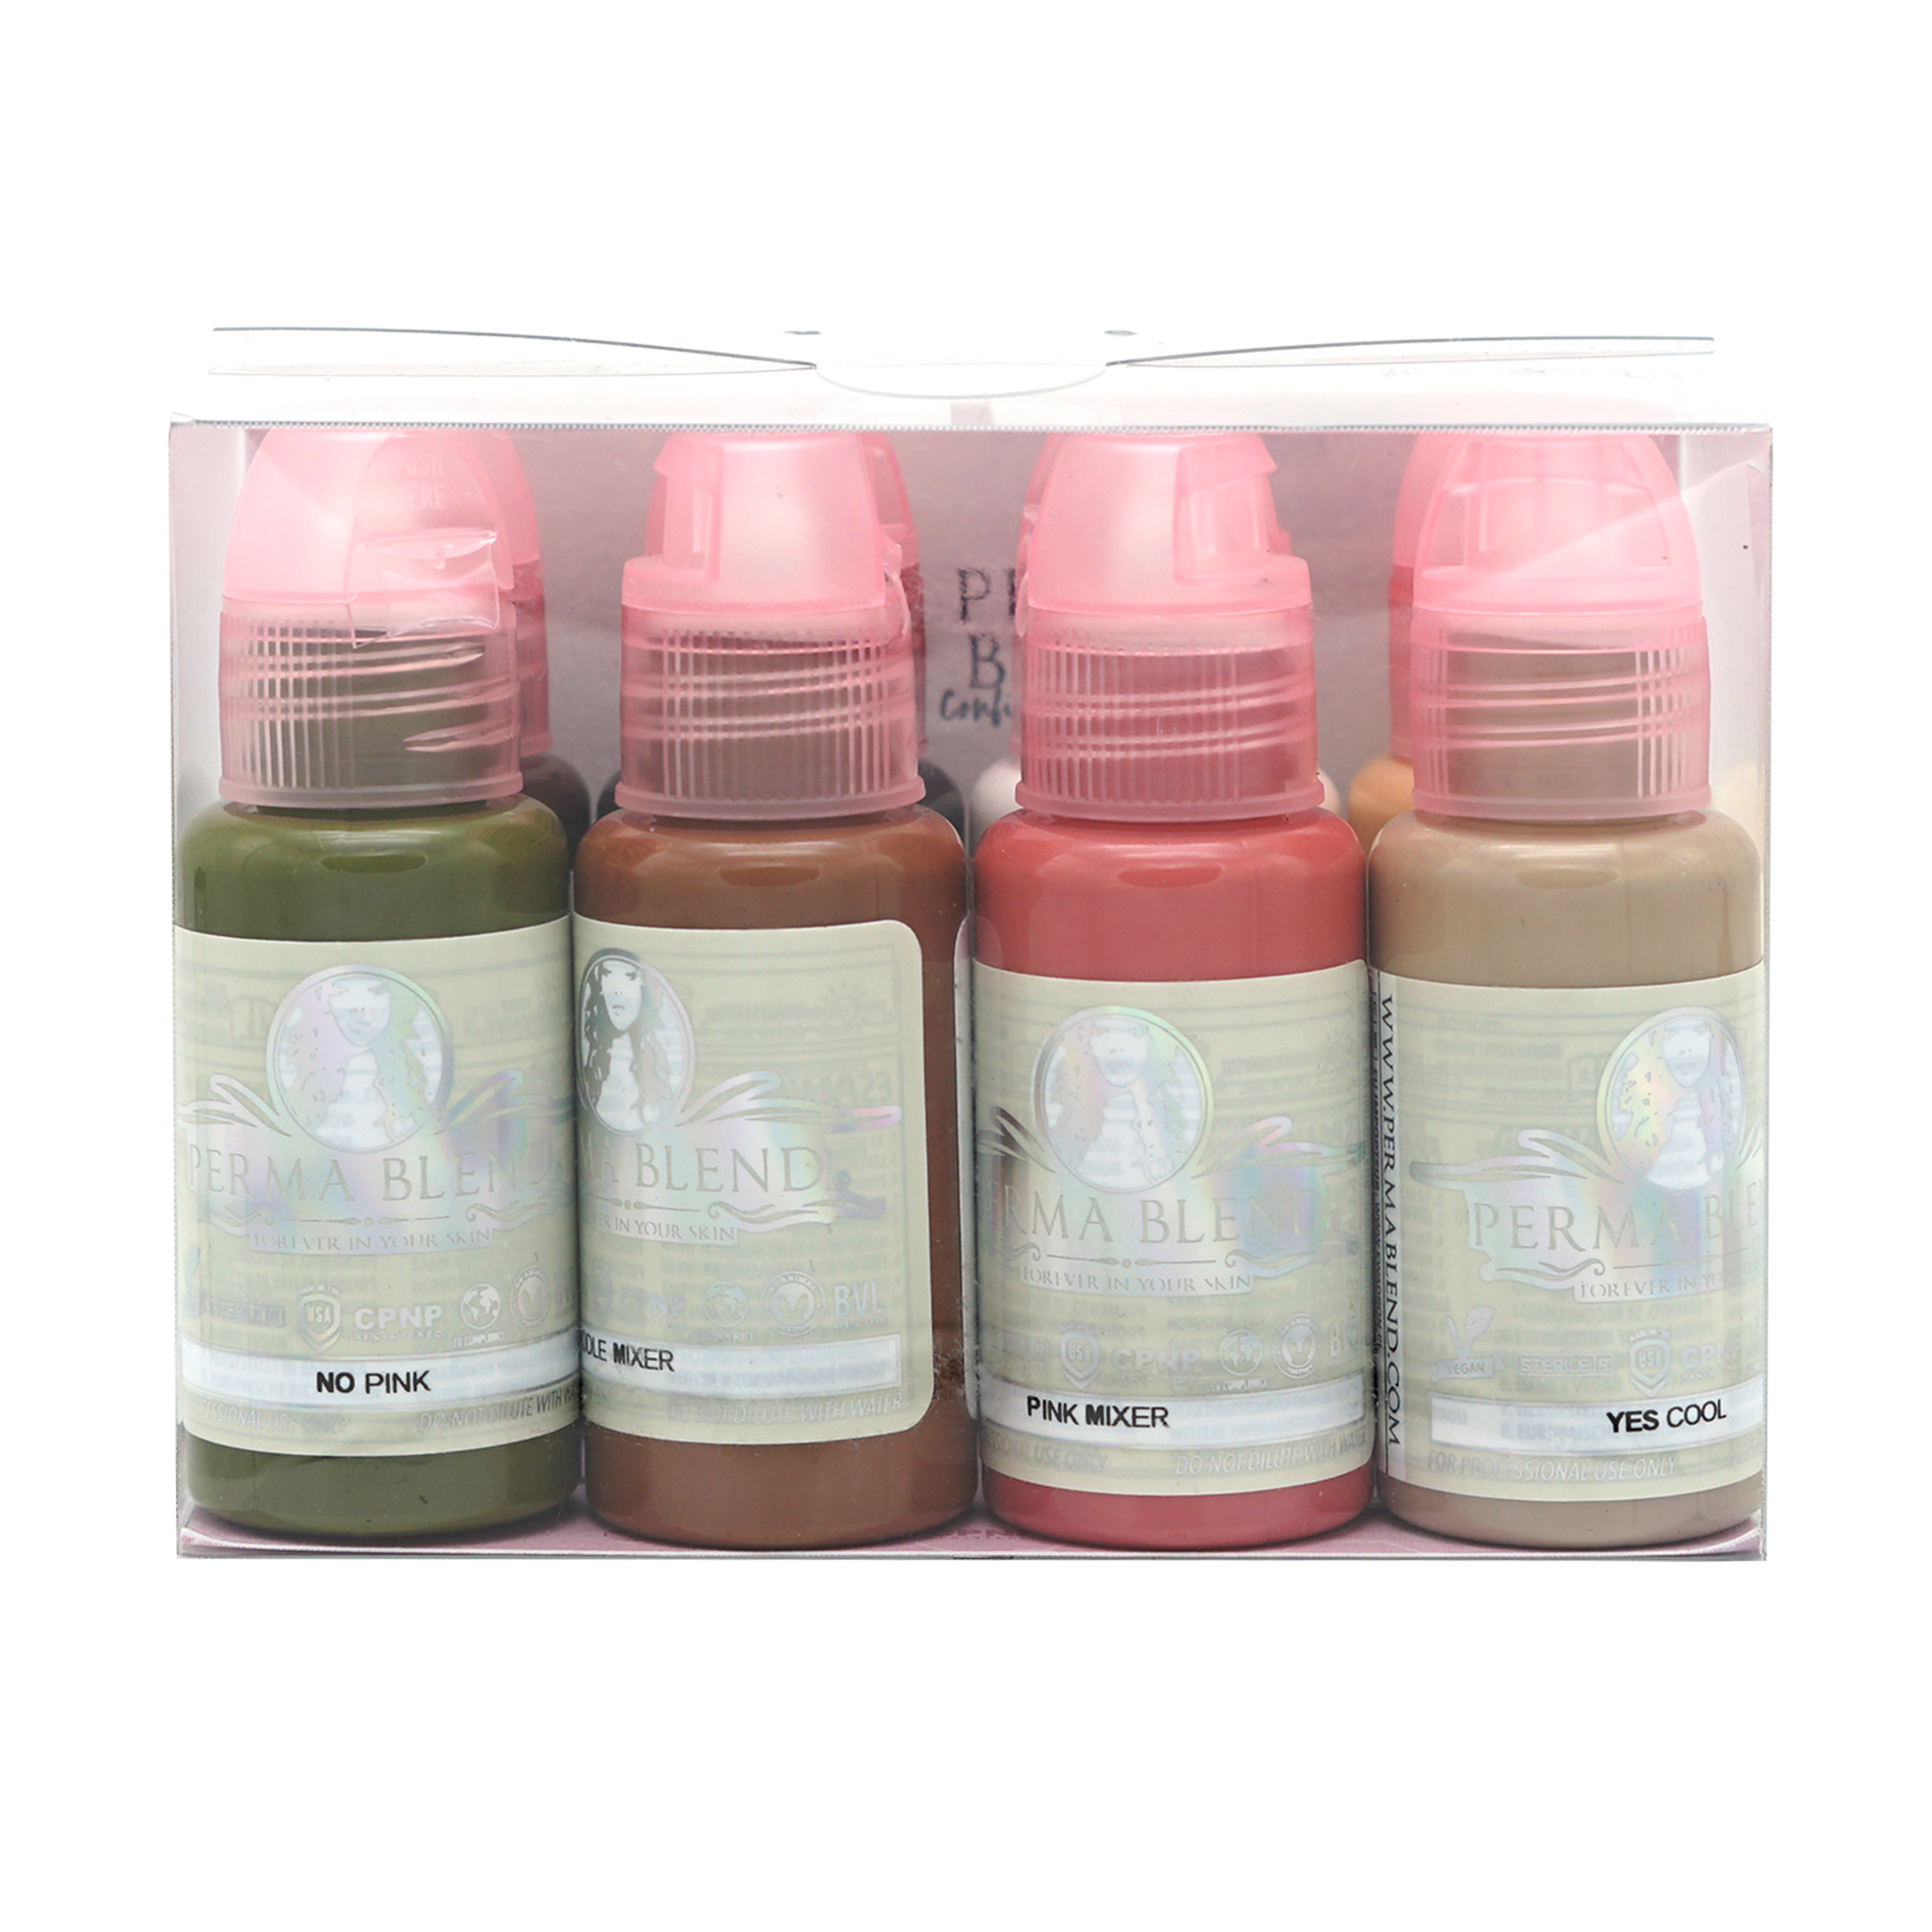 Pigments for areola medical tattooing, olive (no pink), brown, pink, cool, golden, white, dark brown, black